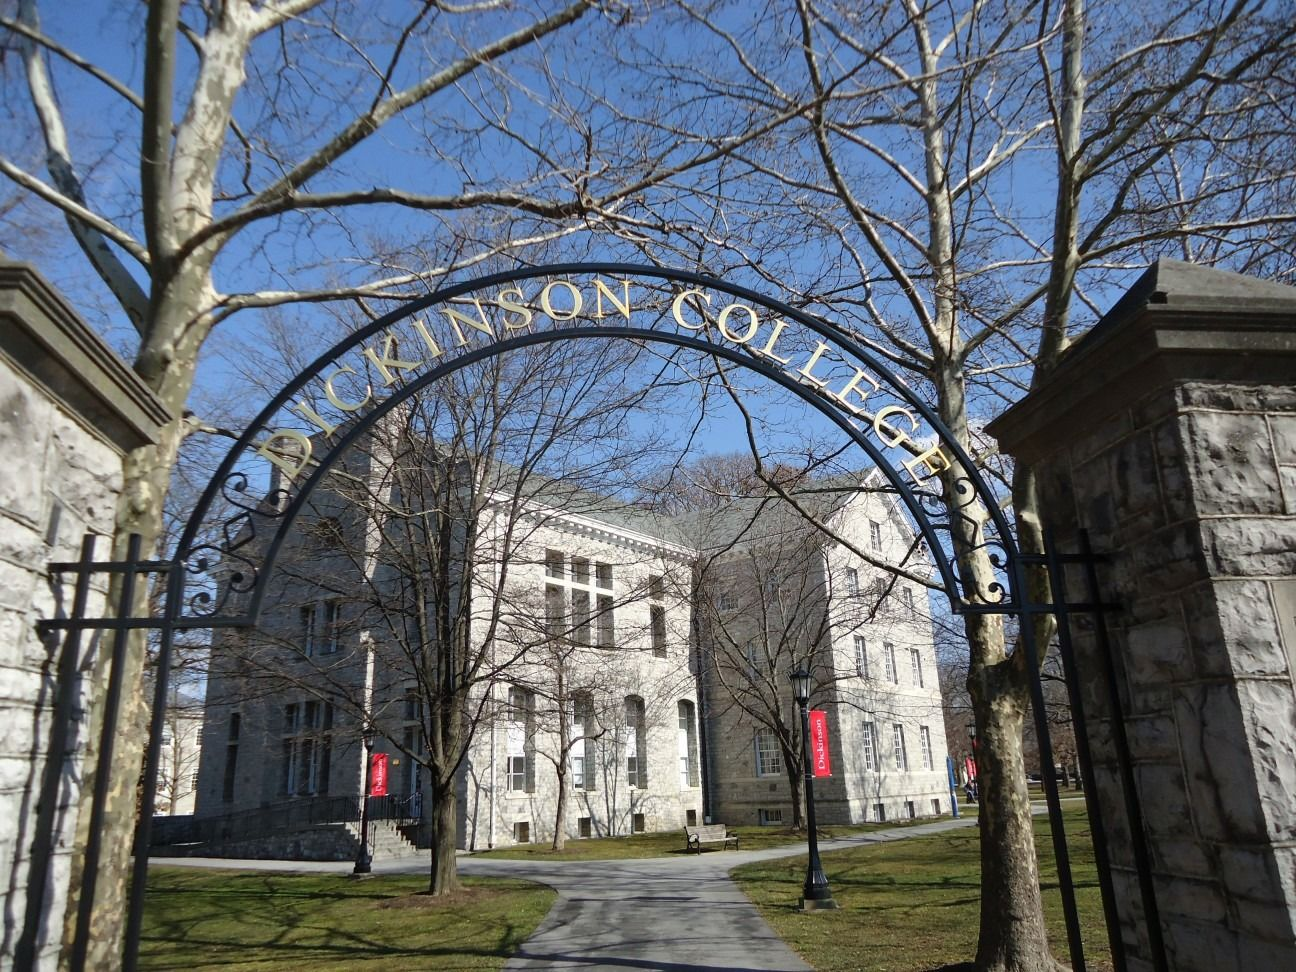 The entrance to Dickinson College